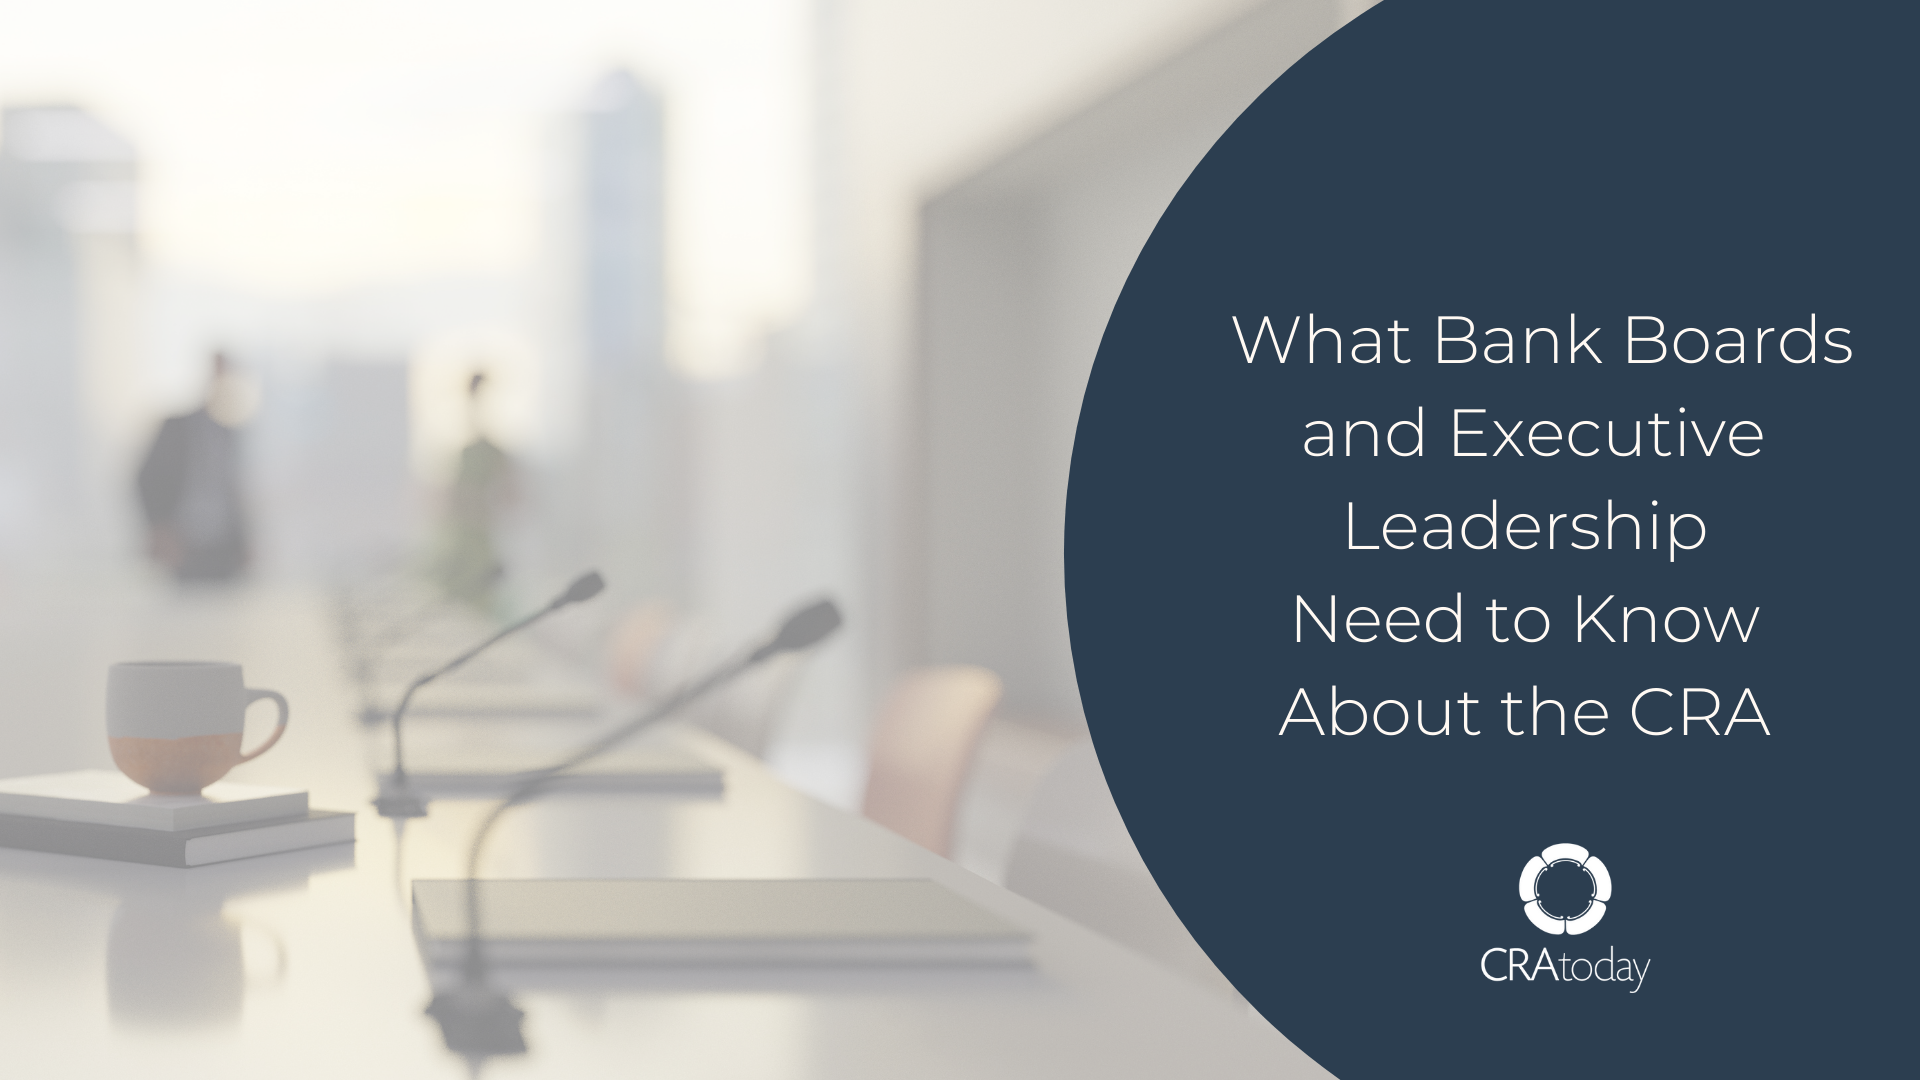 What Bank Boards and Executive Leadership Need to Know About the CRA